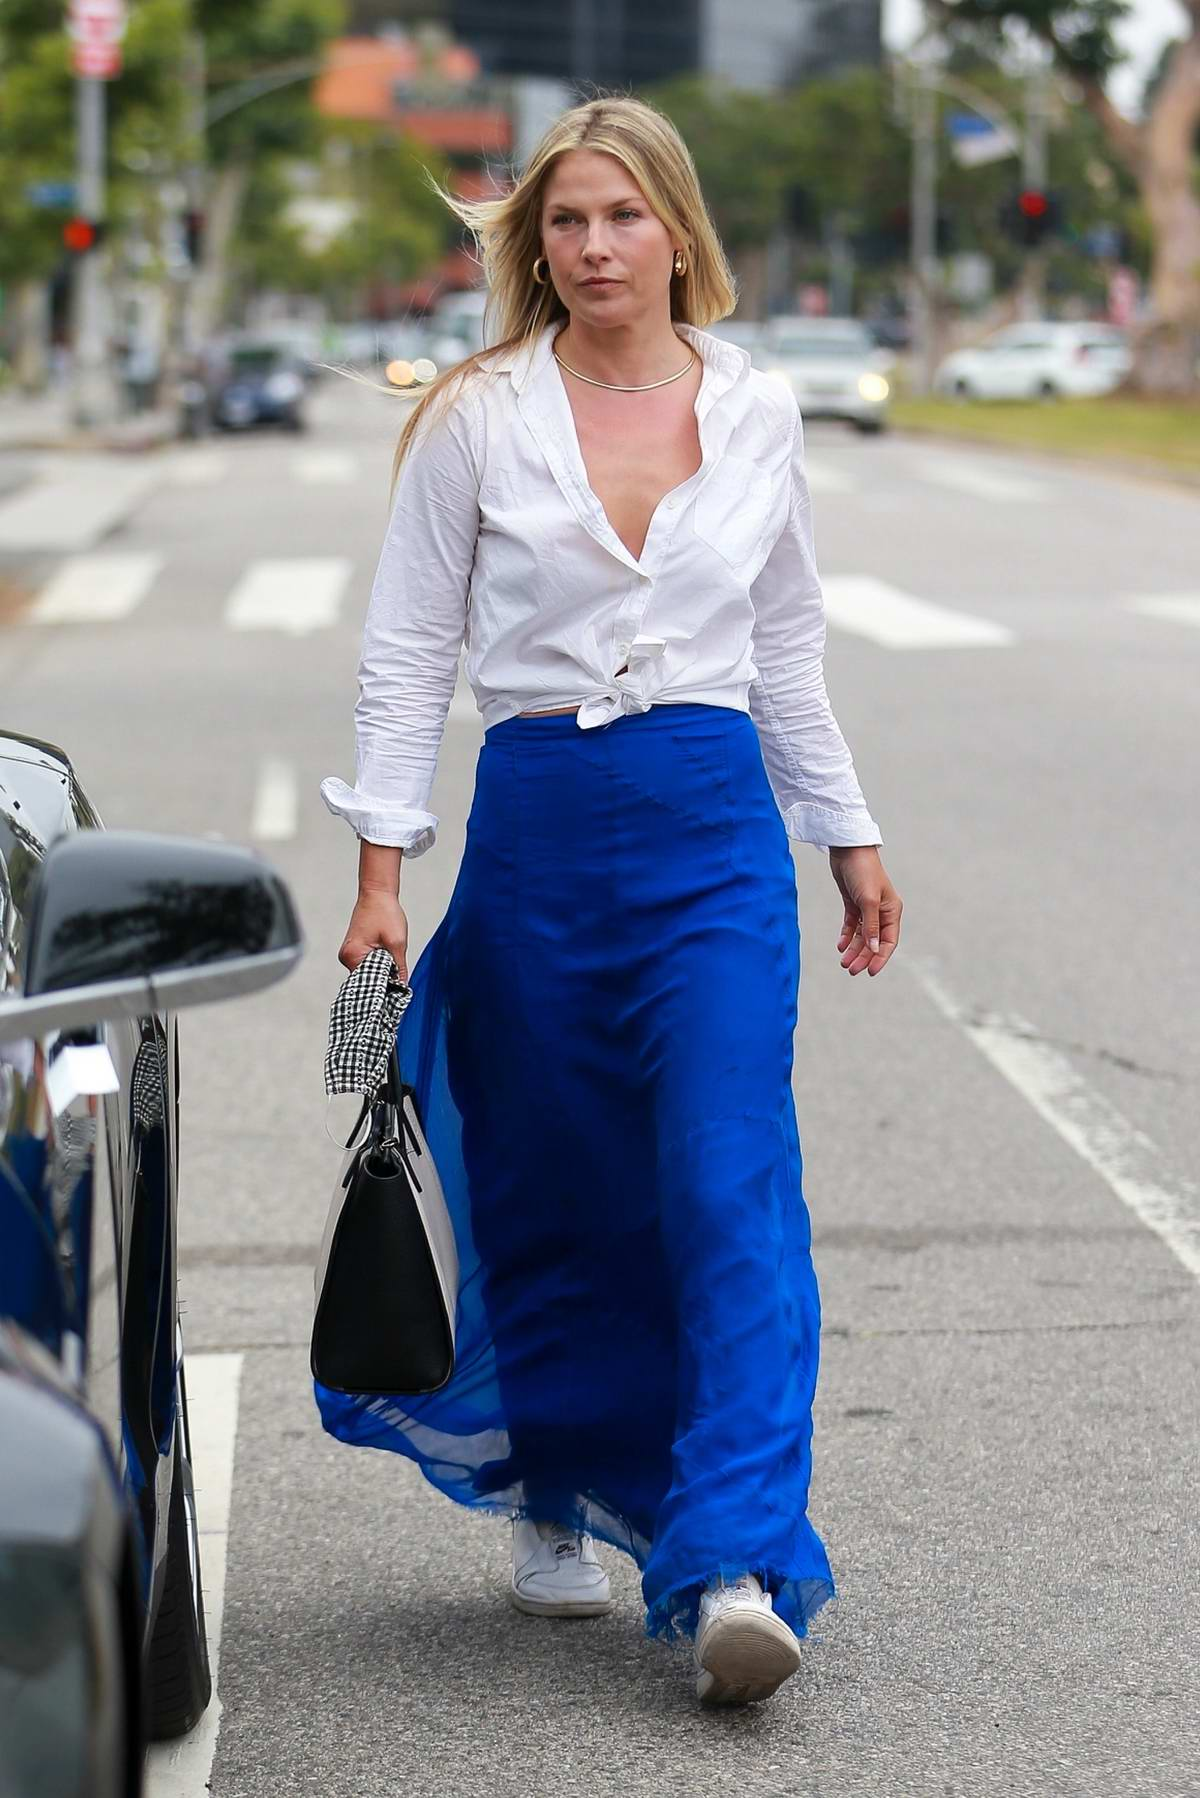 Ali Larter looks great in a long blue skirt paired with a white shirt as she visits a friend in Hollywood, California